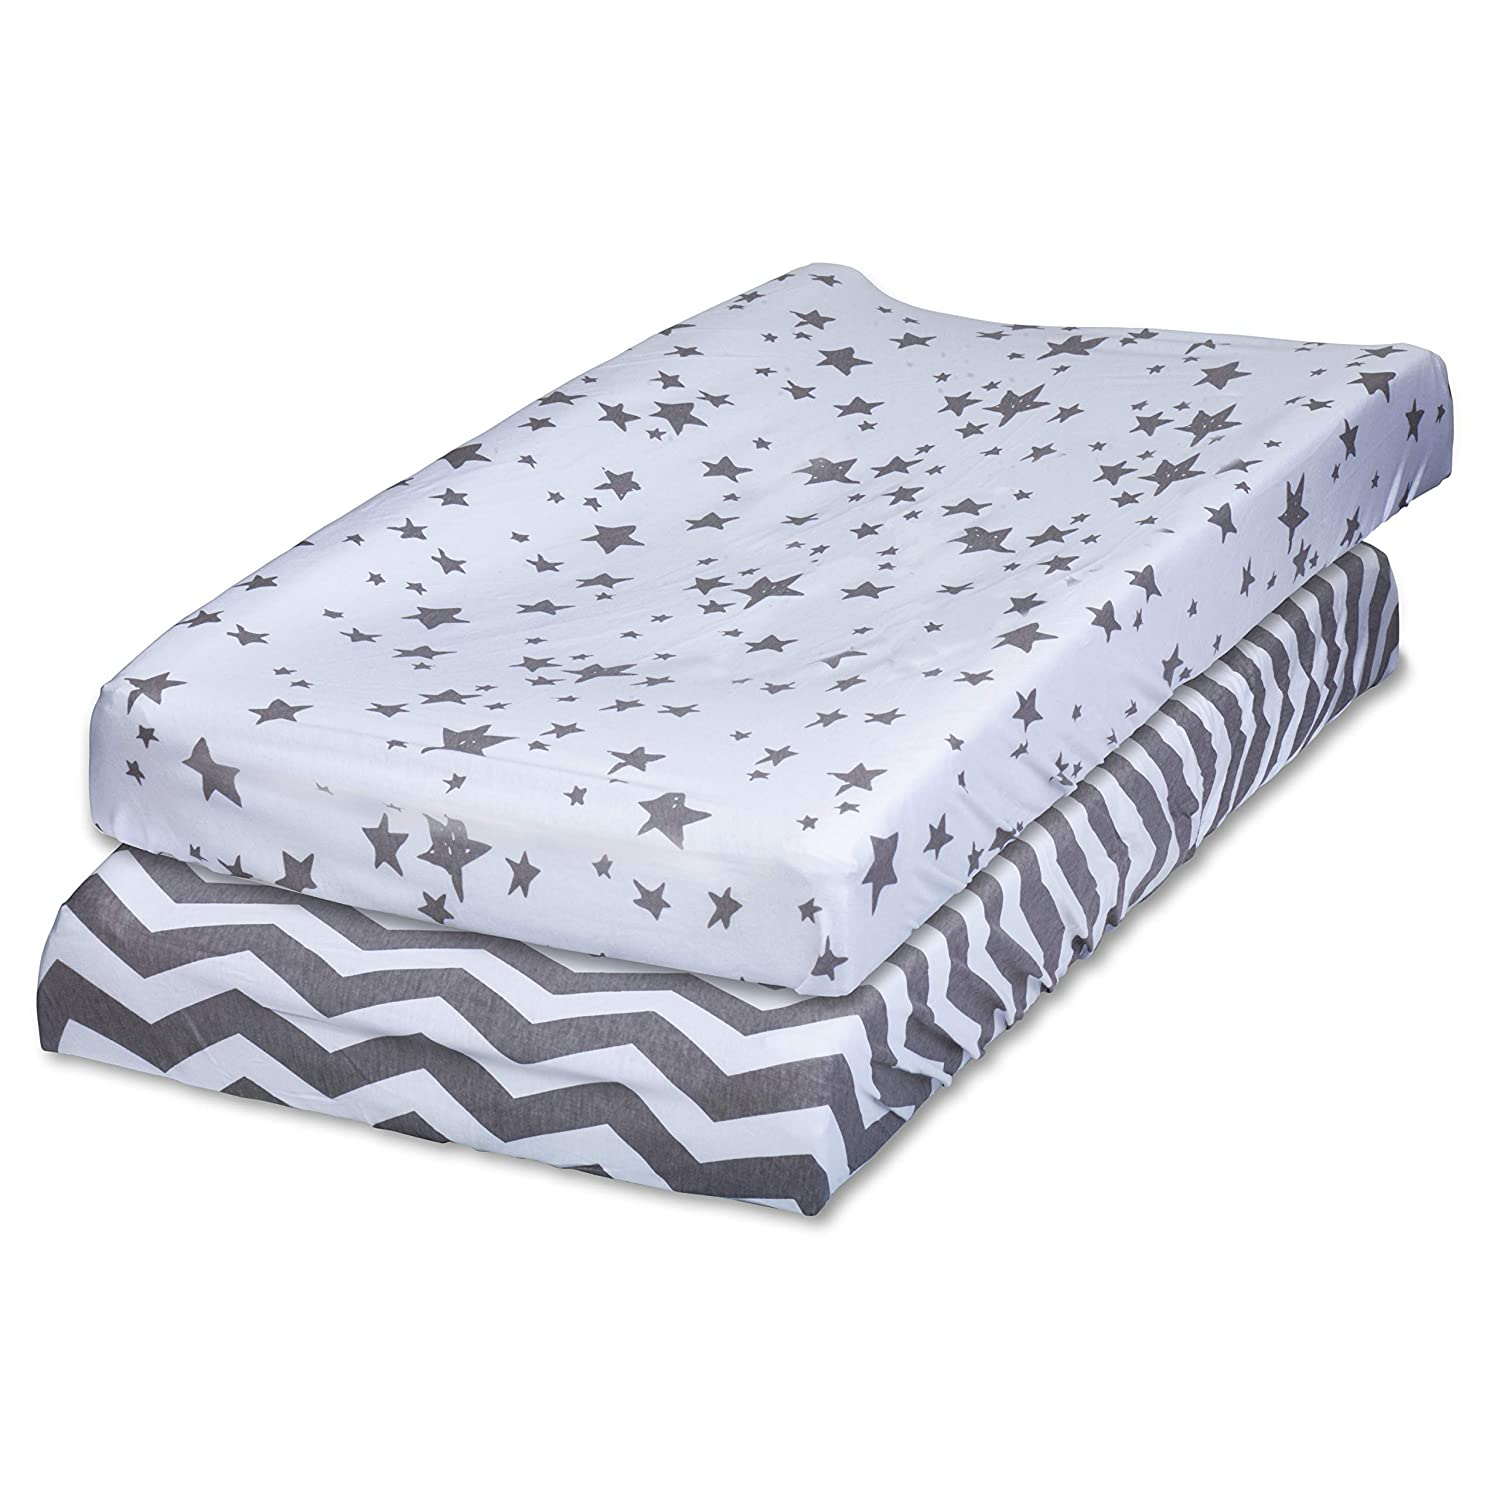 Changing Pad Cover Set - 2 Pack - 100% Jersey Cotton Fabric. Stylish Gray Chevron and Star Prints. Perfect for Baby Girl and Baby Boy Mr. Storkey